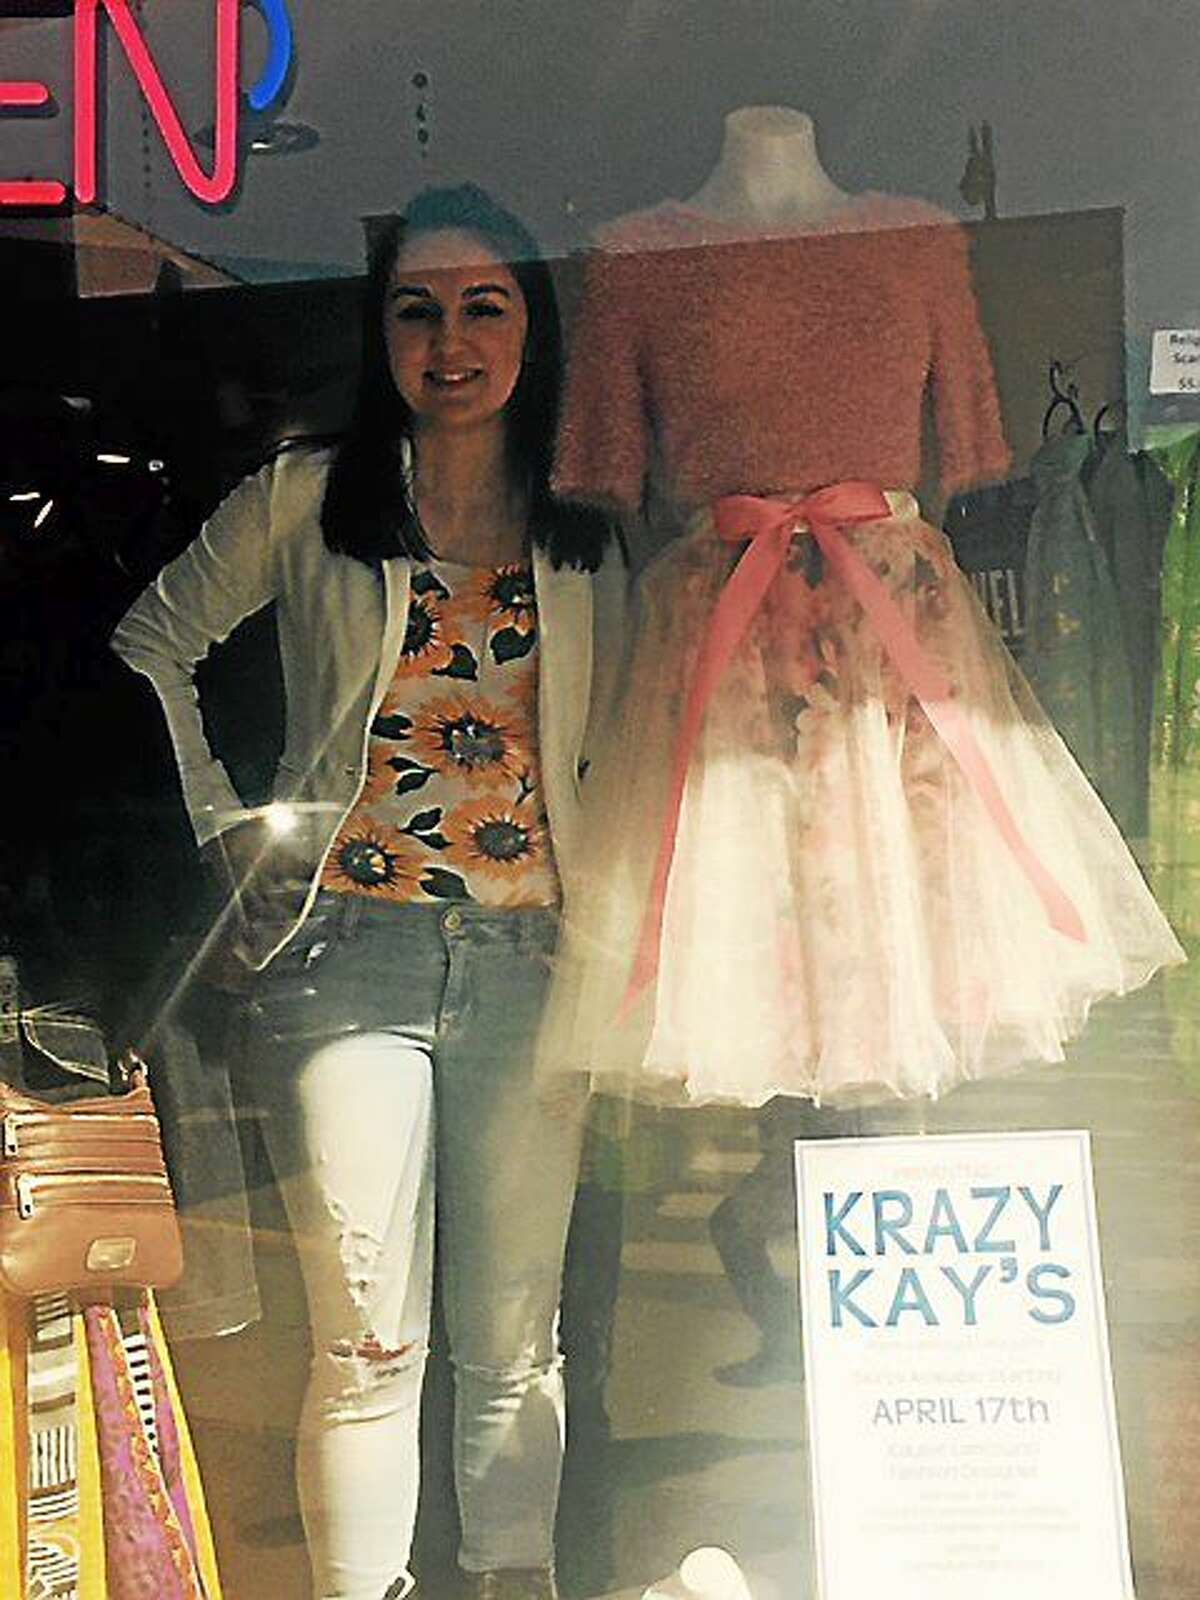 Kaylee Lanczycki, of Krazy Kay's, with one of her tulle skirts in the window of Joey's Fashions on Main Street.